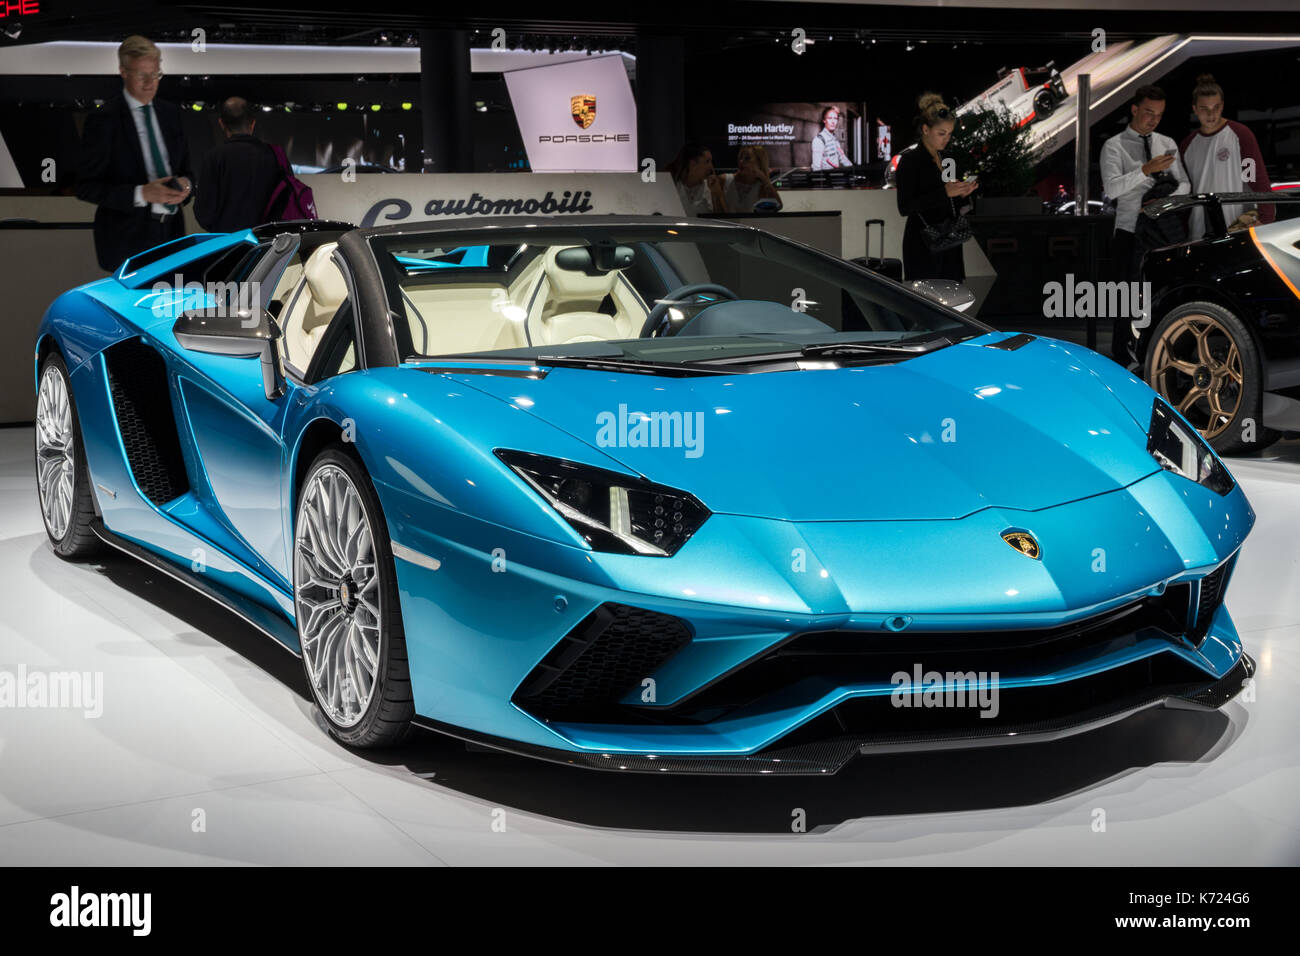 lamborghini car 2018. 13th sep, 2017. new 2018 lamborghini aventador s roadster sports car presented at the frankfurt iaa motor show credit: jlbvdwolf/alamy live news